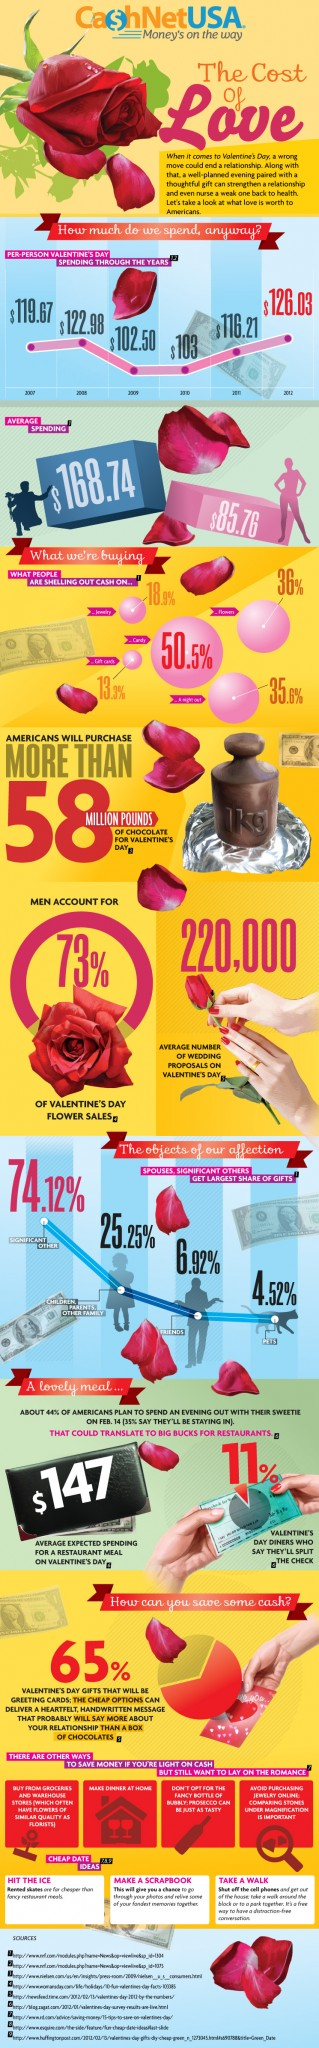 The Cost of Love Infographic #dadchat